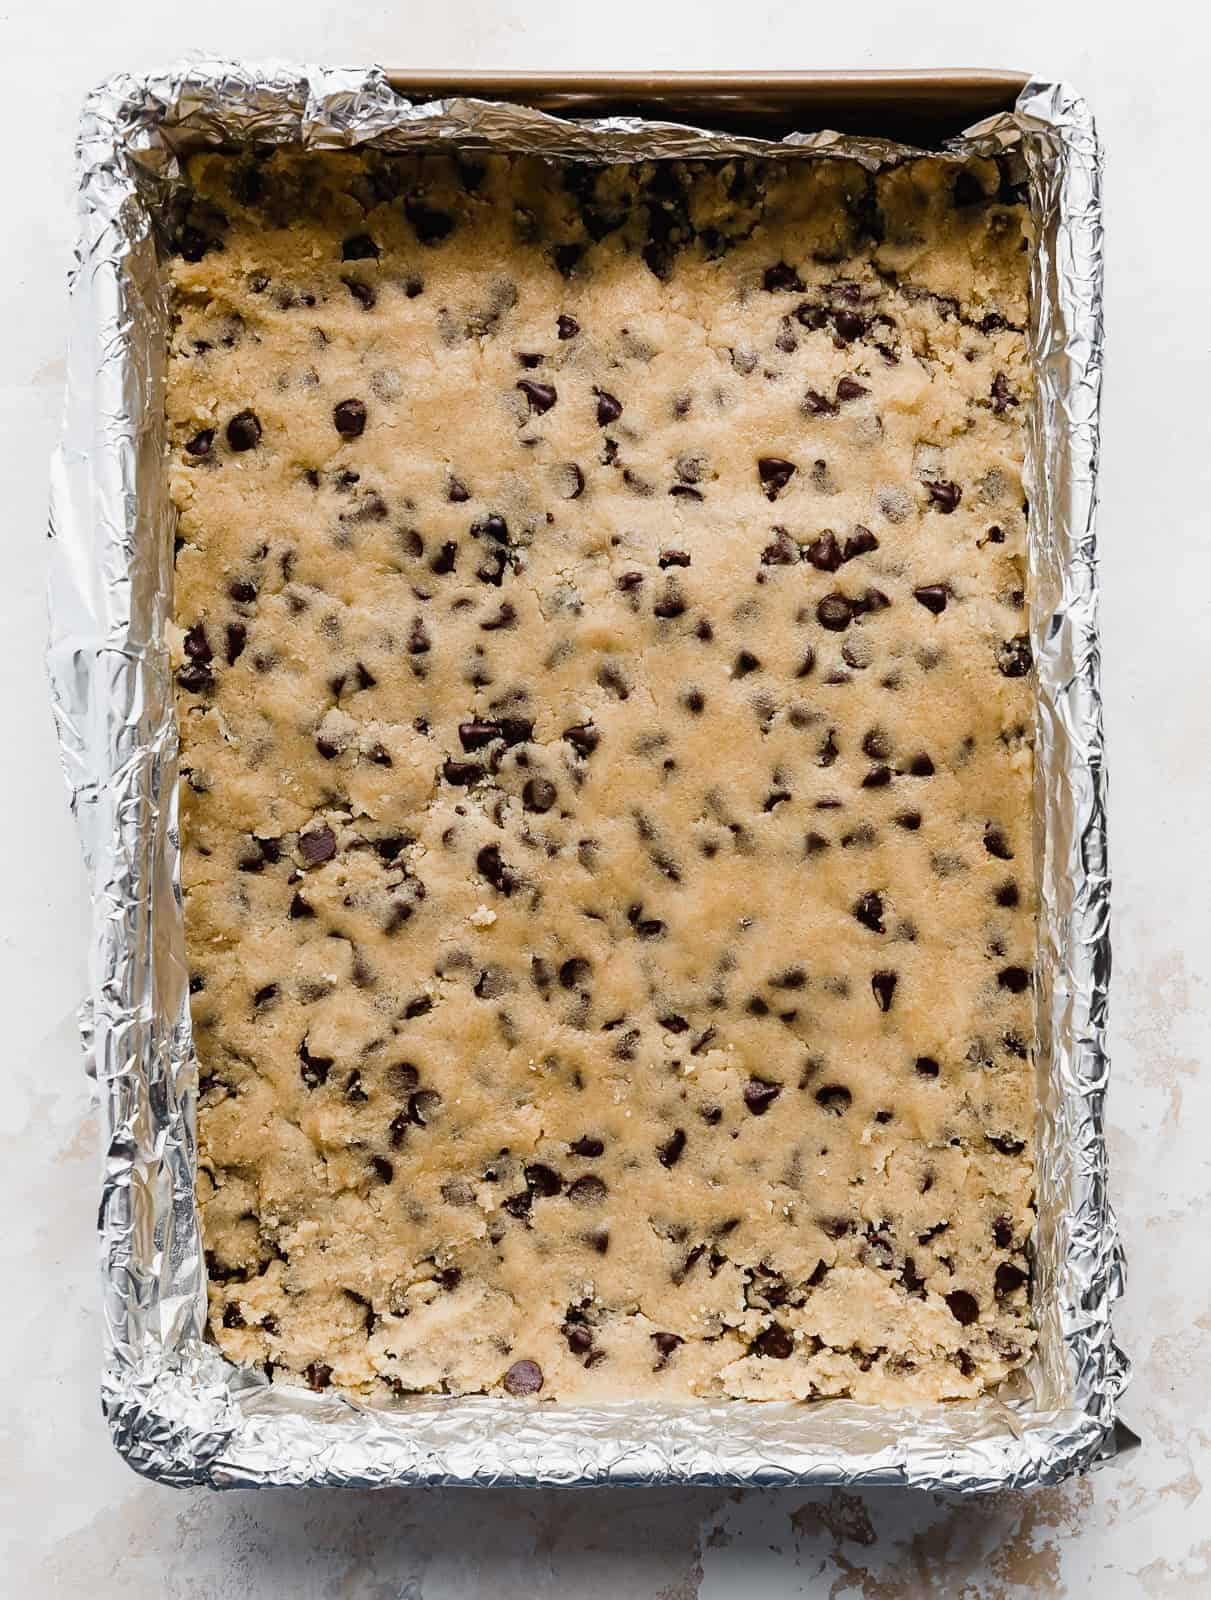 A 9x13 inch baking dish with chocolate chip cookie dough pressed into the pan.